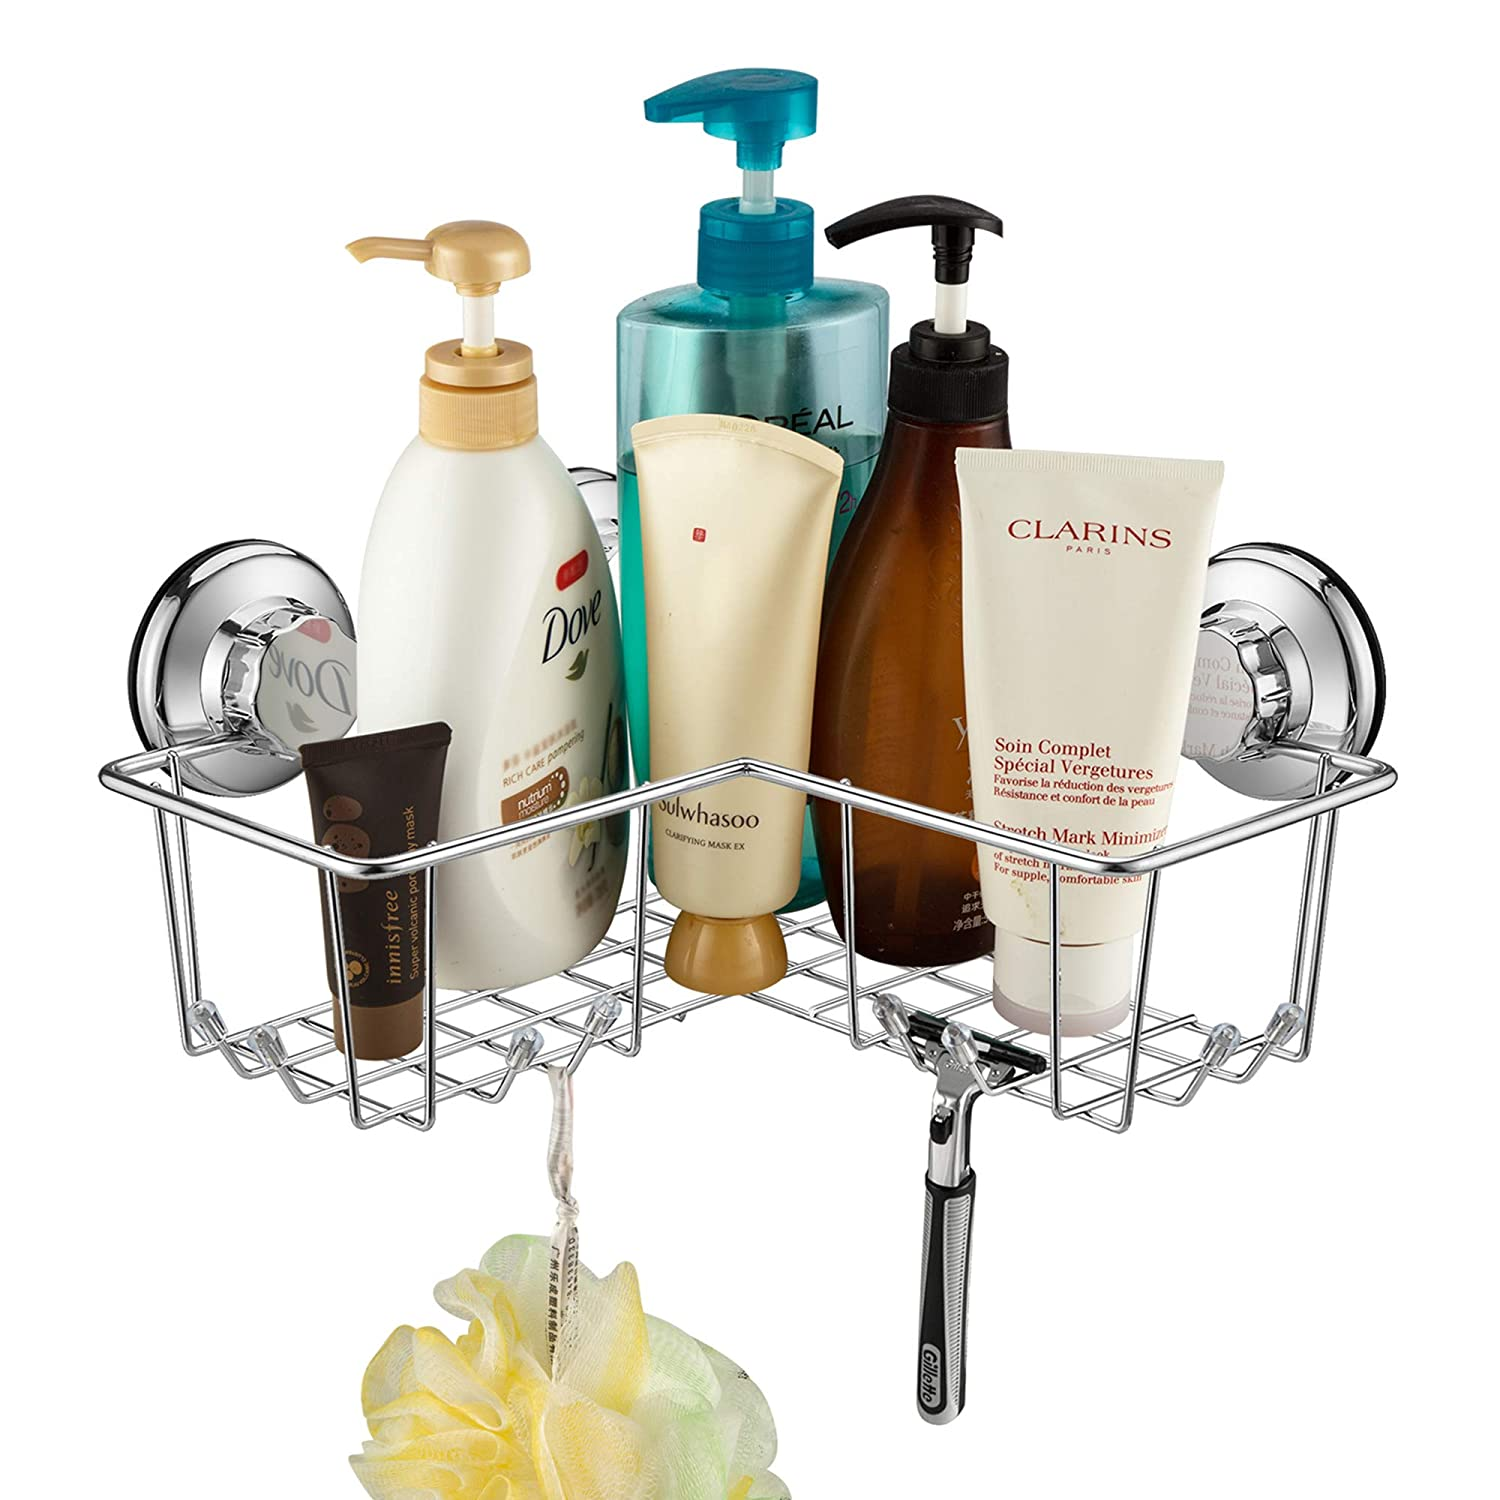 iPEGTOP Powerful Vacuum Suction Cup Corner Shower Caddy - Combo Organizer Basket Holder with 8 Hooks - Stainless Steel for Bathroom Storage APTL0015